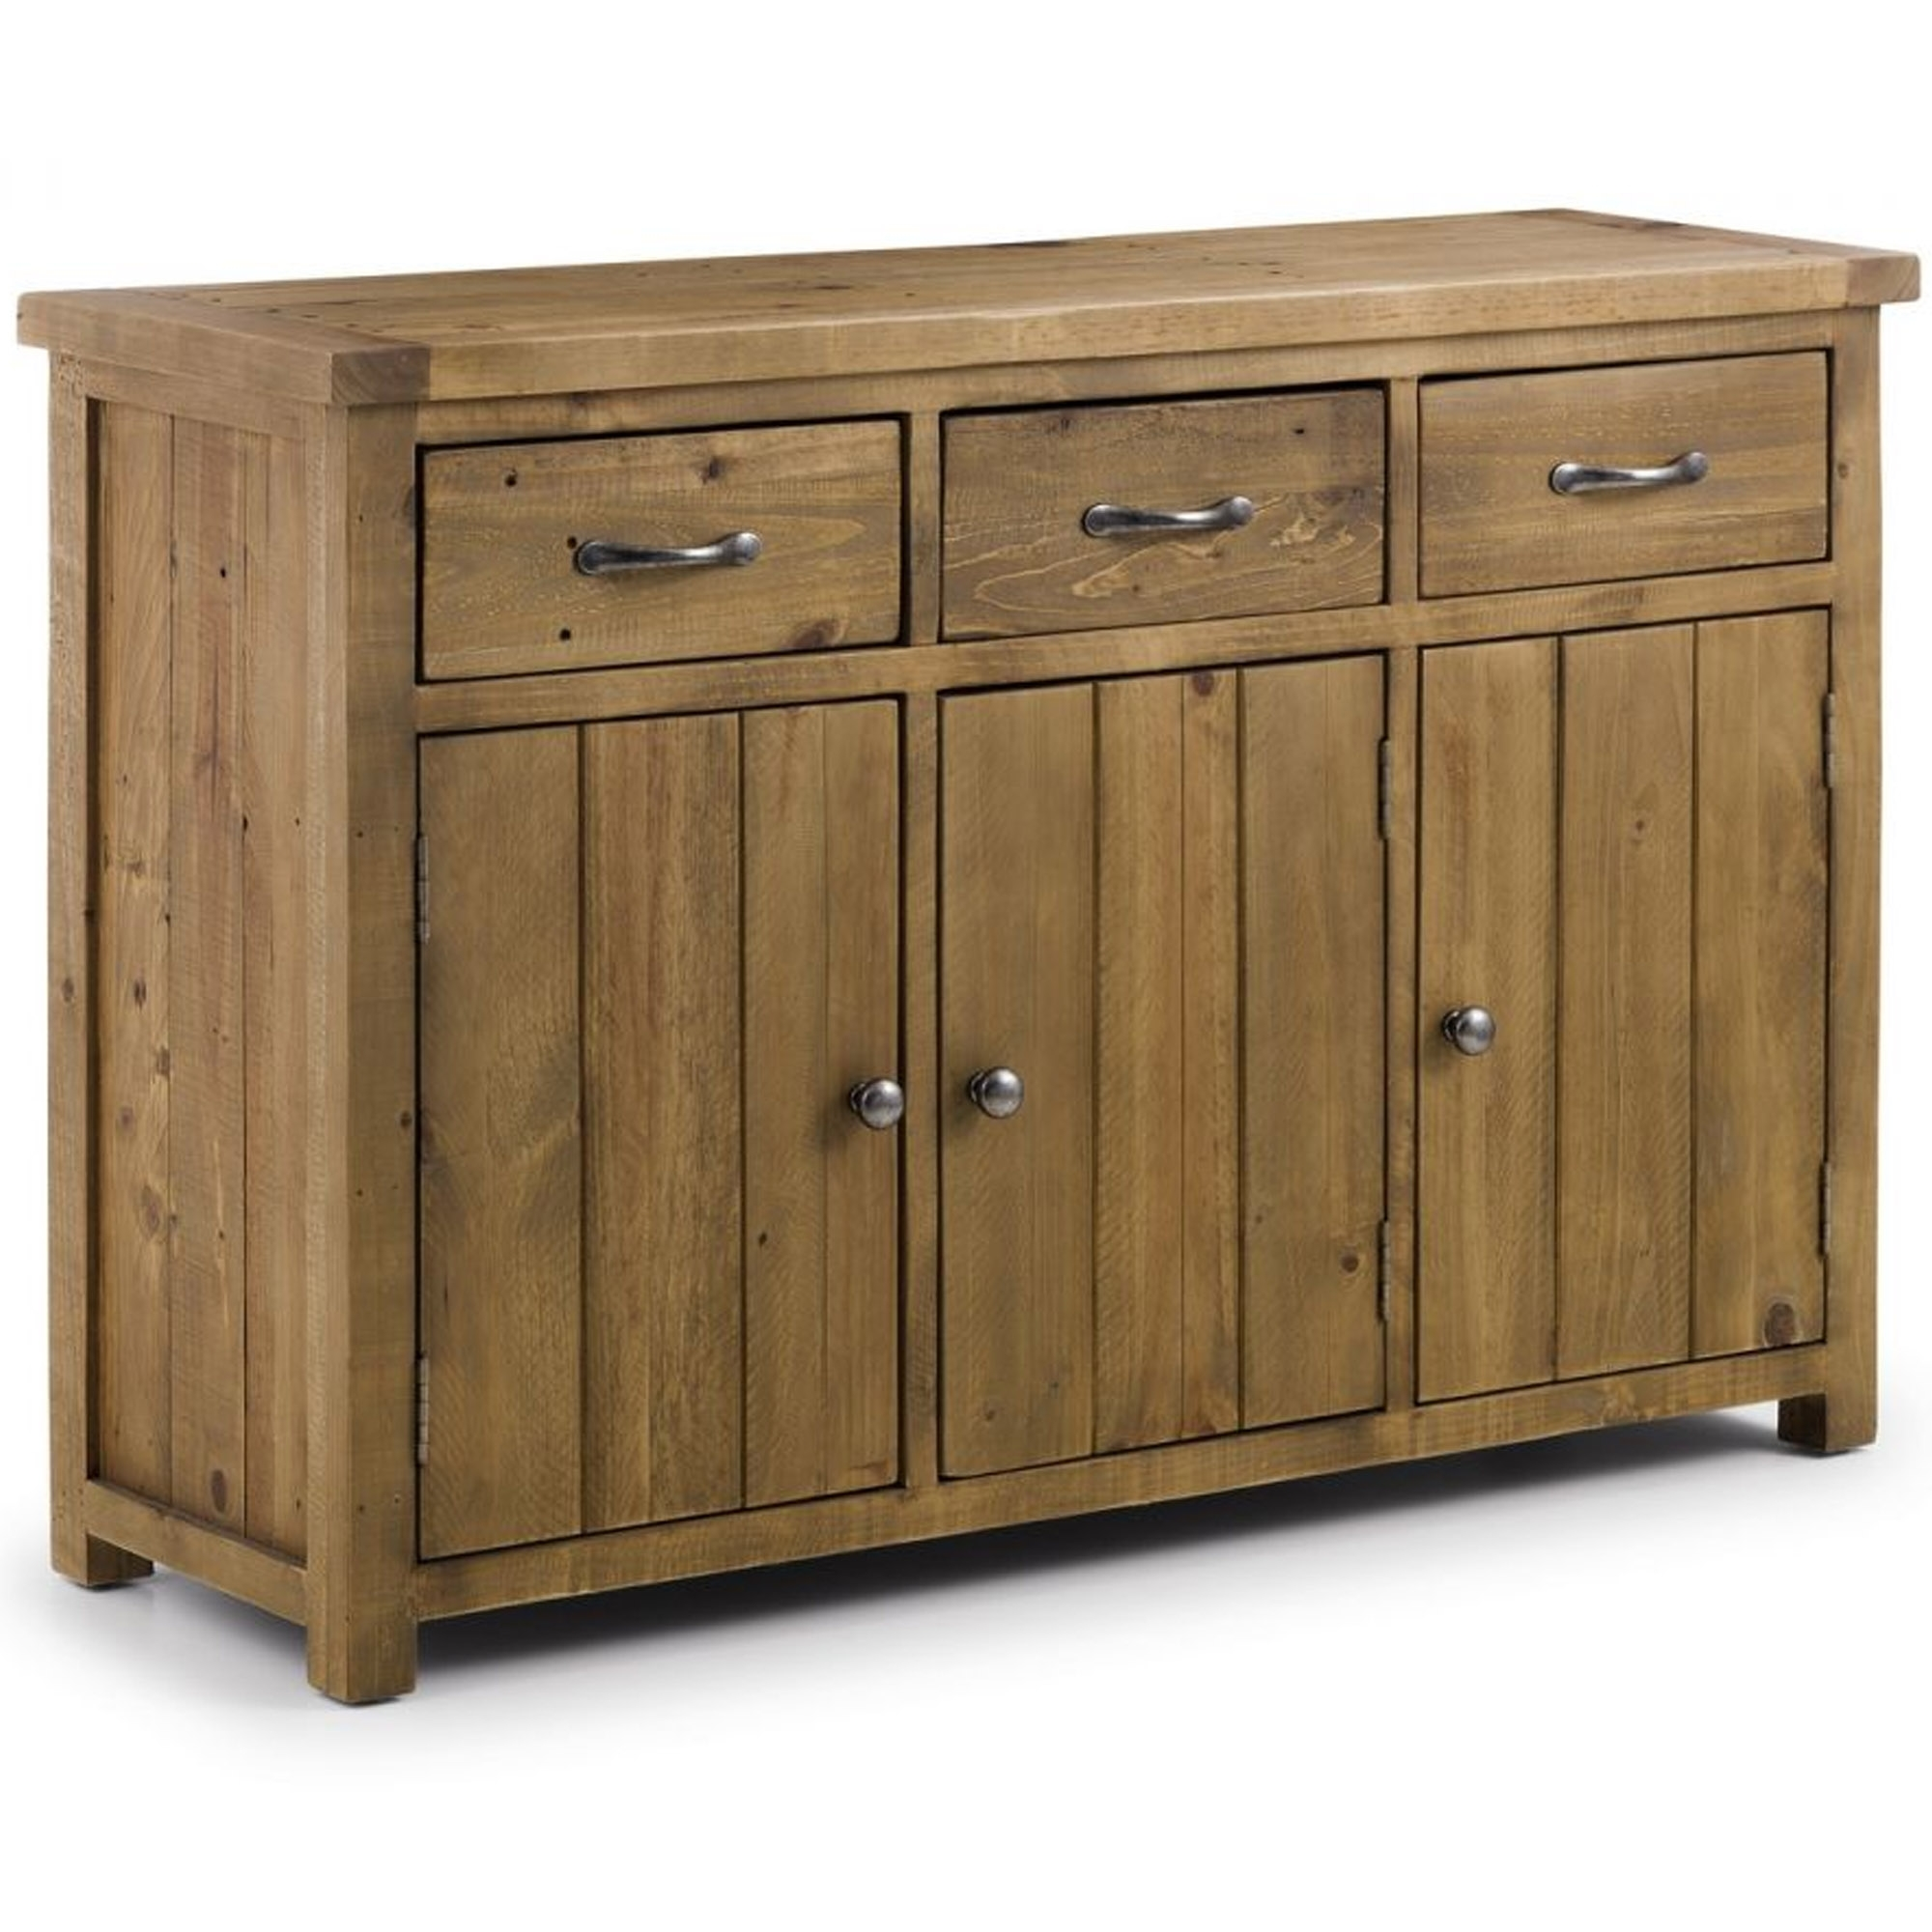 the garden product chest mahogany drawer free styles aspen furniture by cupboard collection home